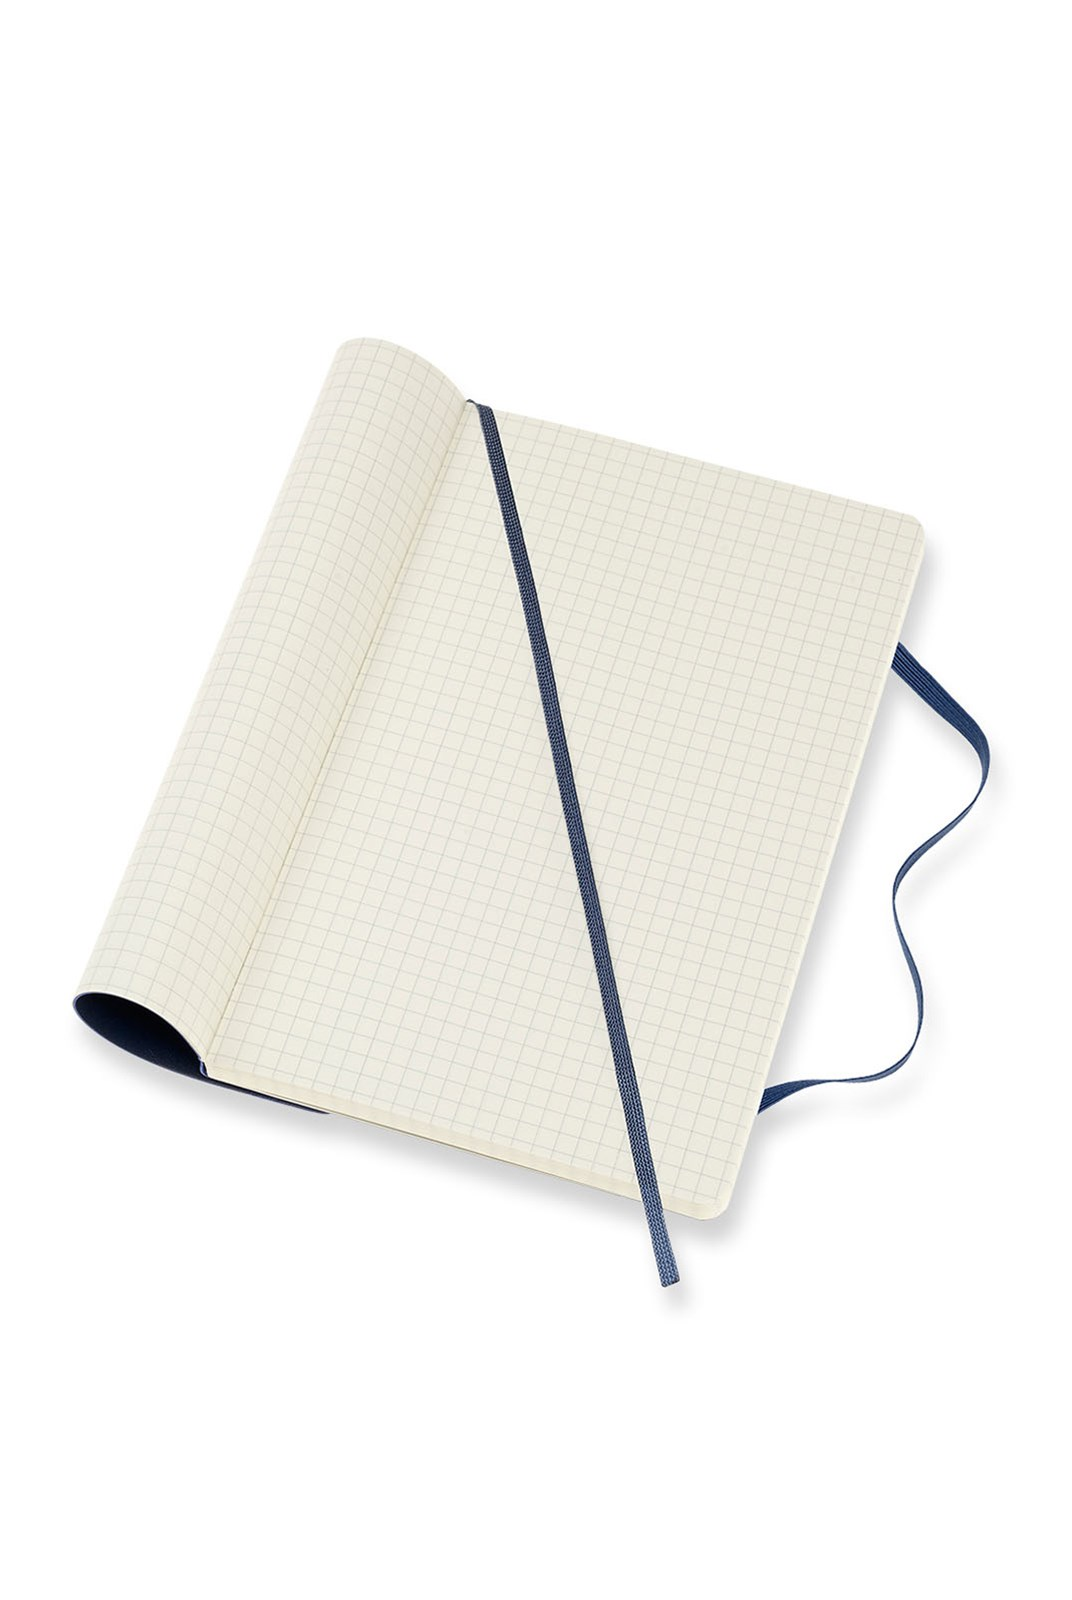 Moleskine - Classic Soft Cover Notebook - Grid - Large - Sapphire Blue